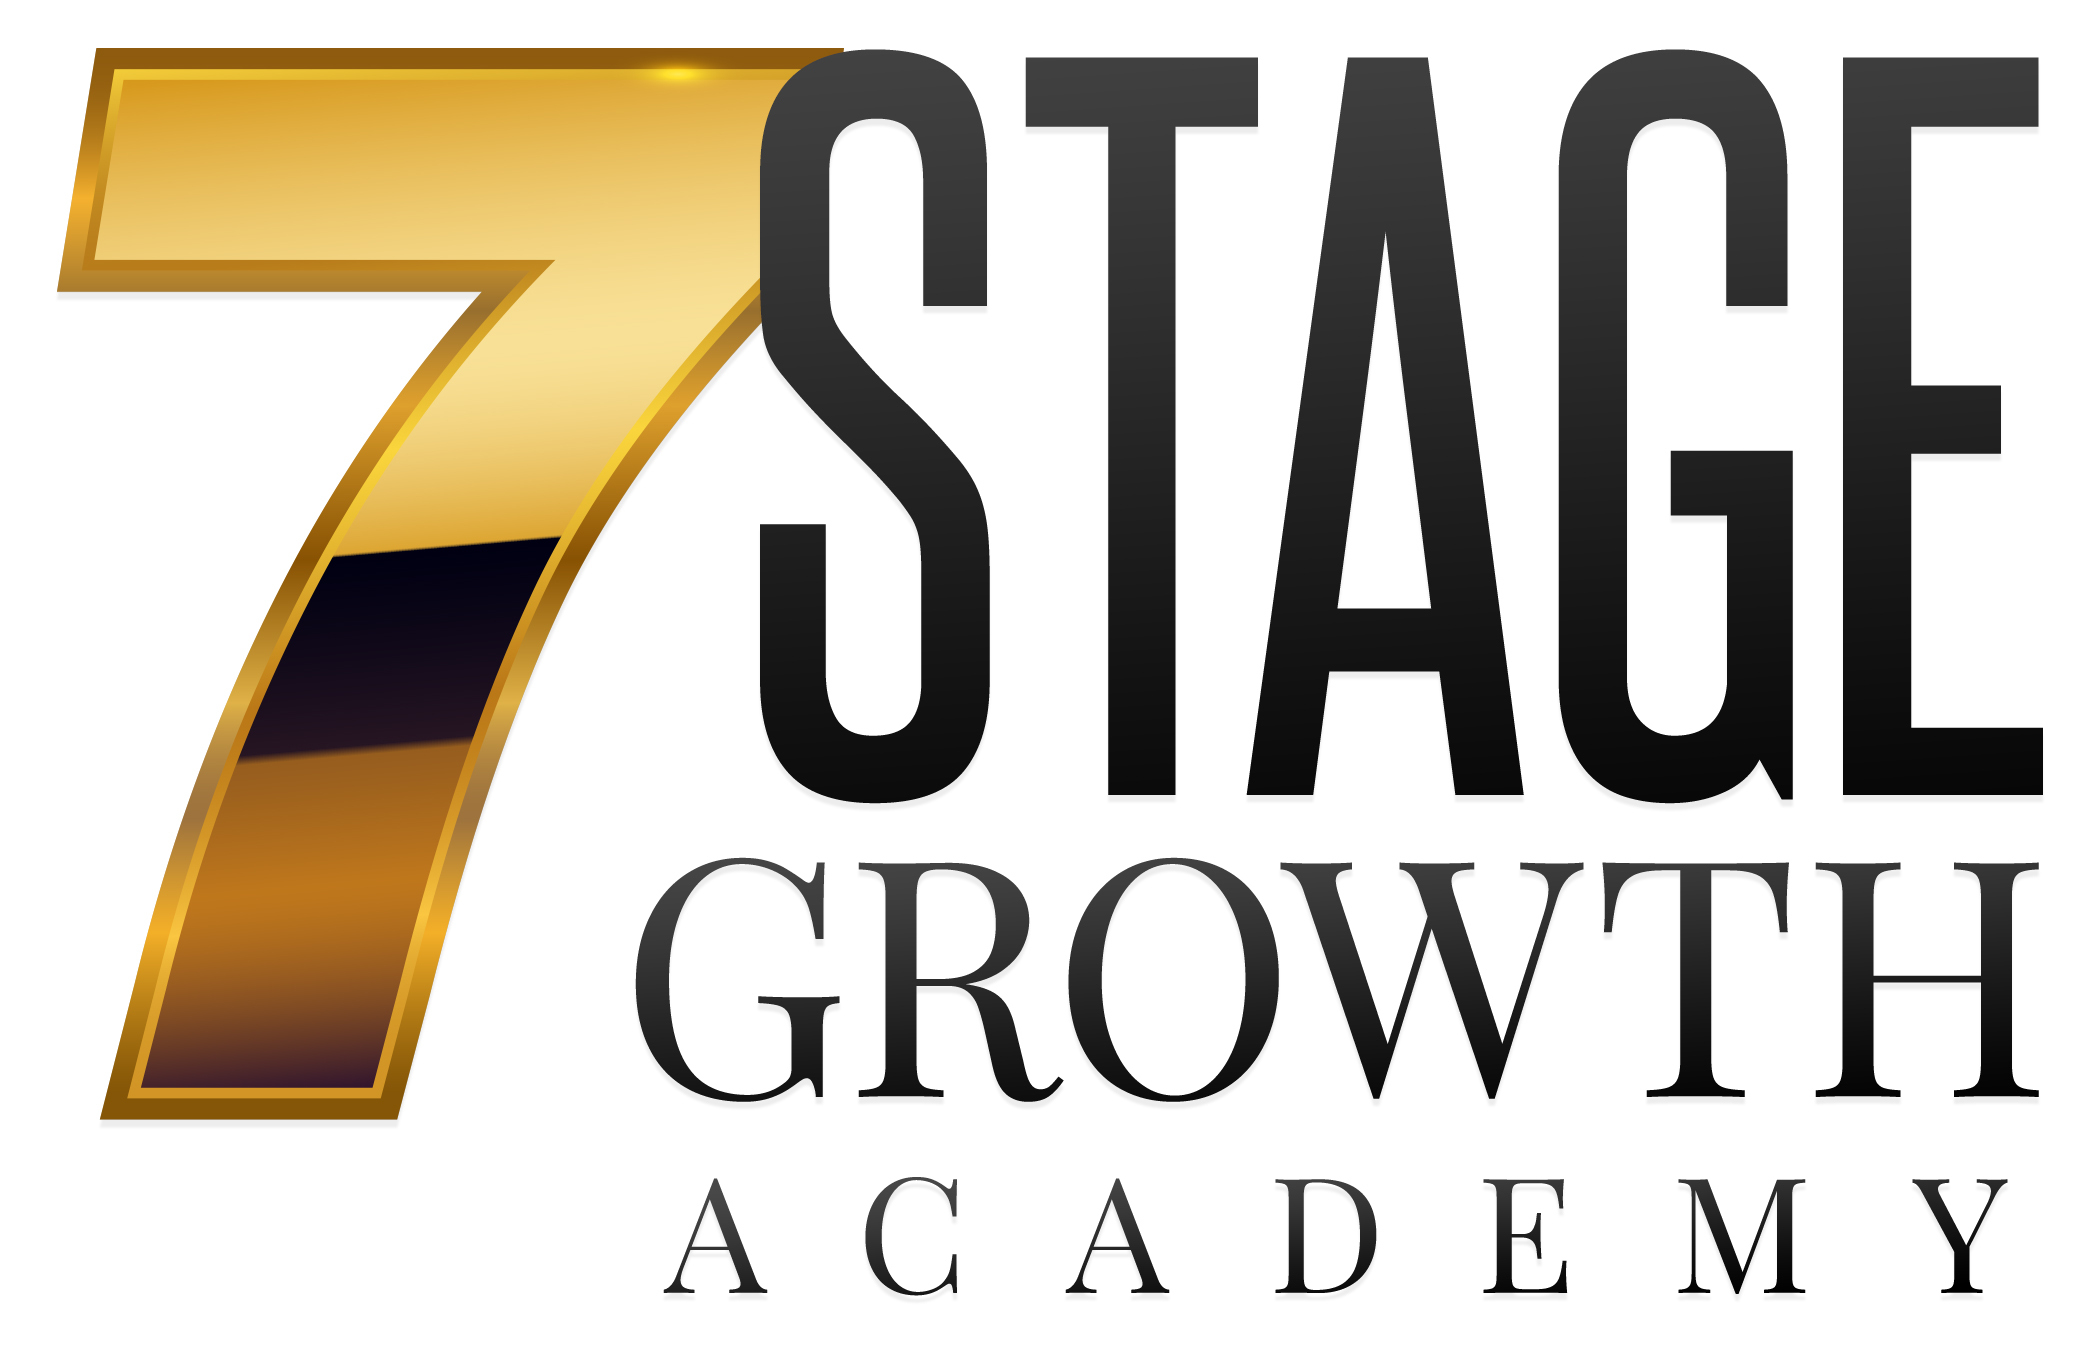 7 Stage Growth Academy